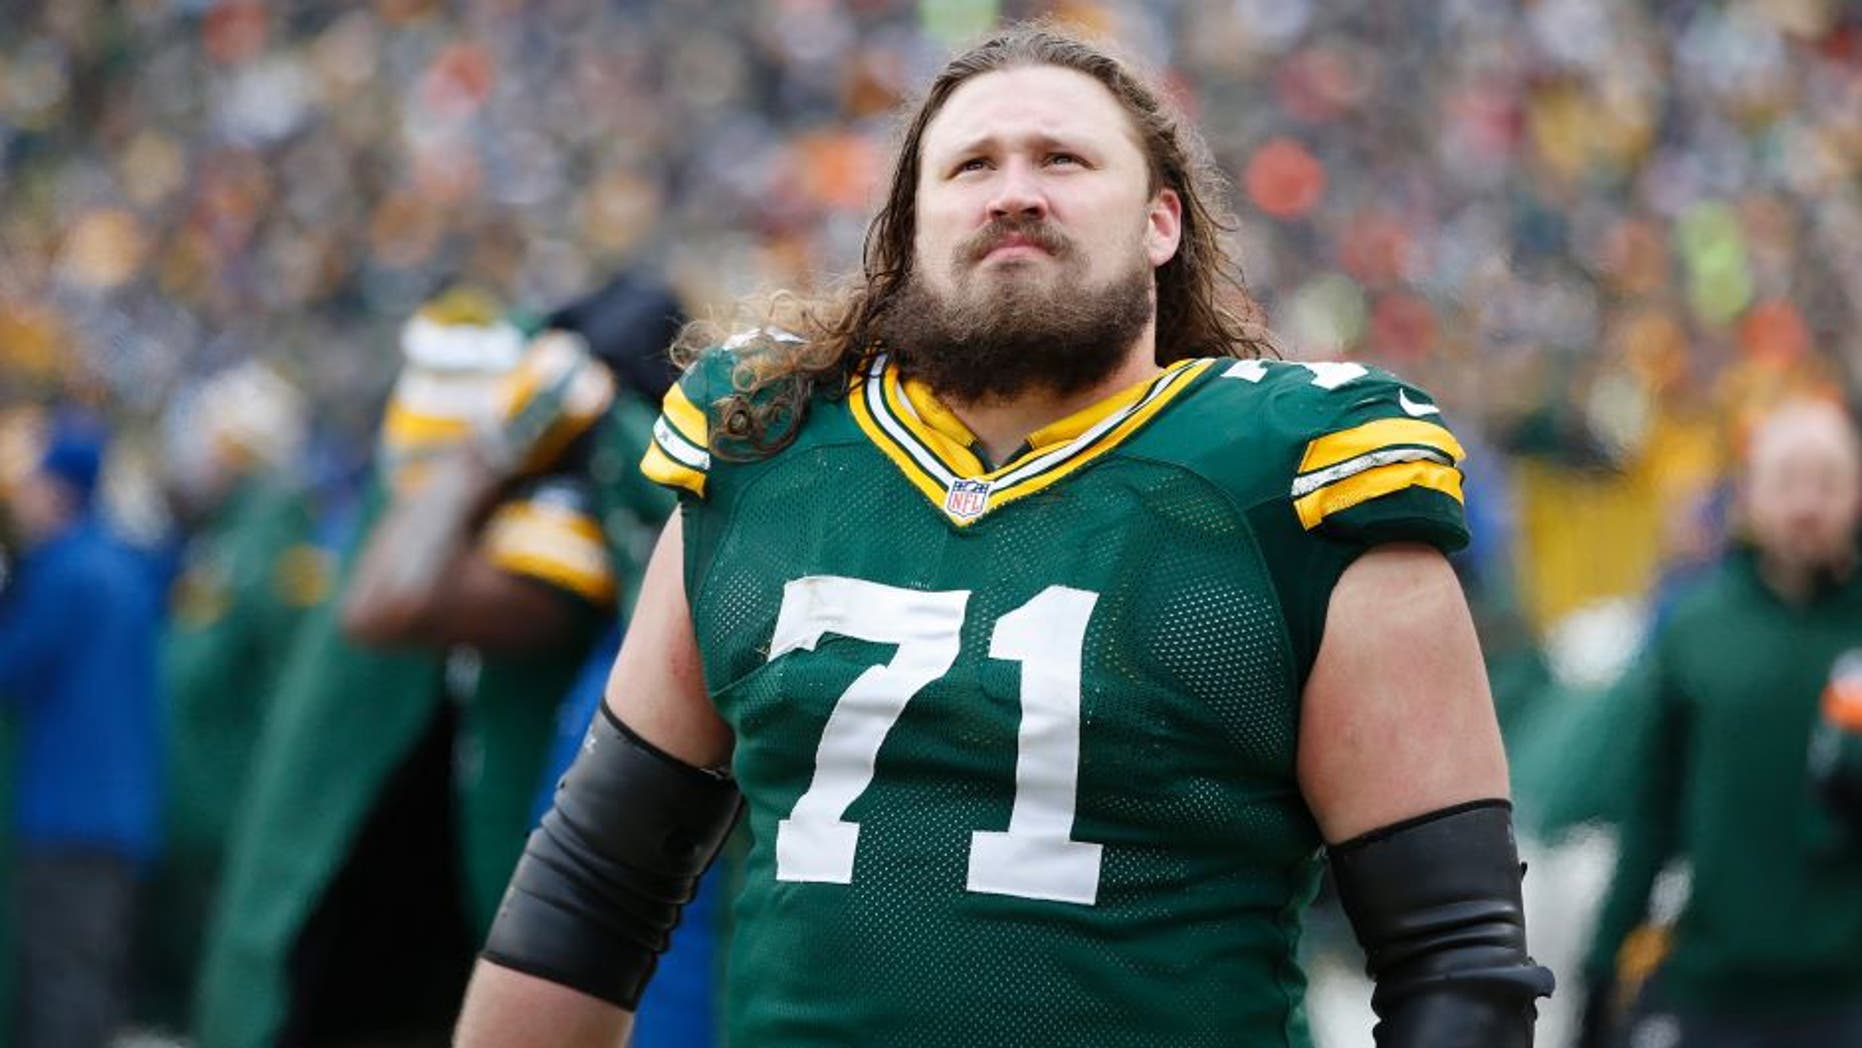 GREEN BAY, WI - JANUARY 11: Josh Sitton #71 of the Green Bay Packers looks on against the Dallas Cowboys during the NFC Divisional Playoff game at Lambeau Field on January 11, 2015 in Green Bay, Wisconsin. The Packers defeated the Cowboys 26-21. (Photo by Joe Robbins/Getty Images)